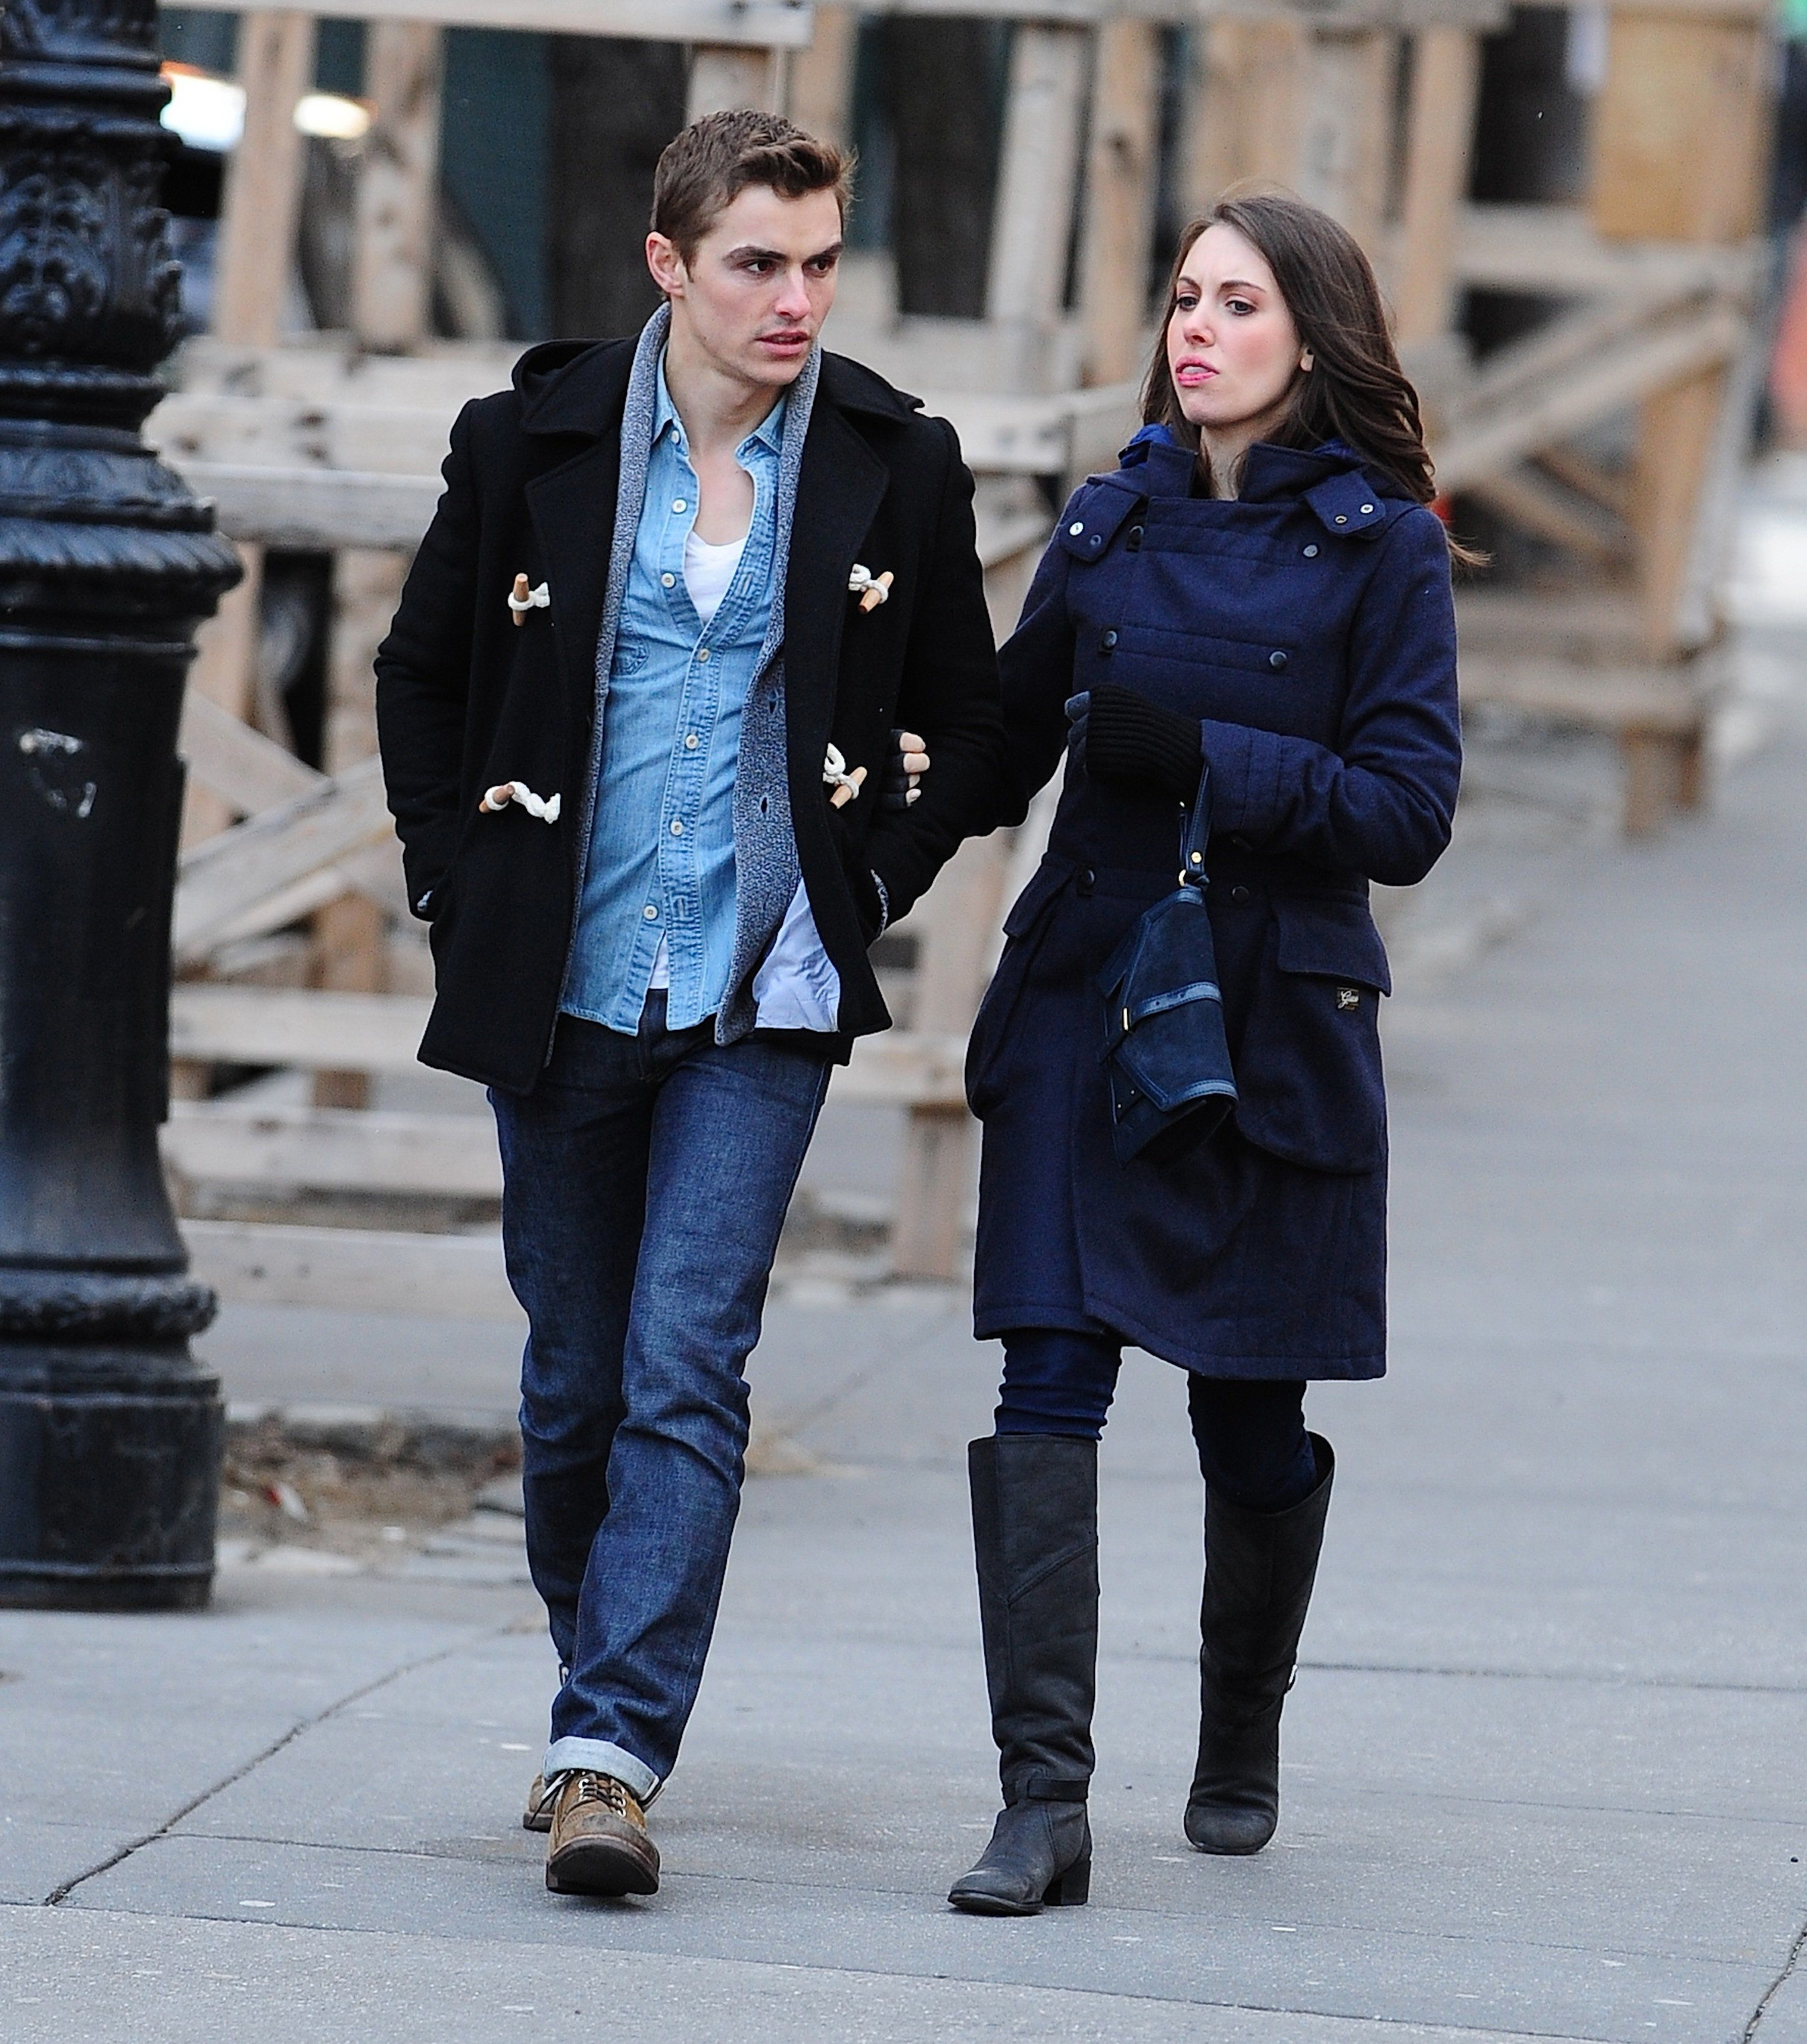 NEW YORK, NY - FEBRUARY 01: Dave Franco and Alison Brie are seen in the West Village  on February 1, 2013 in New York City. (Photo by Alo Ceballos/FilmMagic)